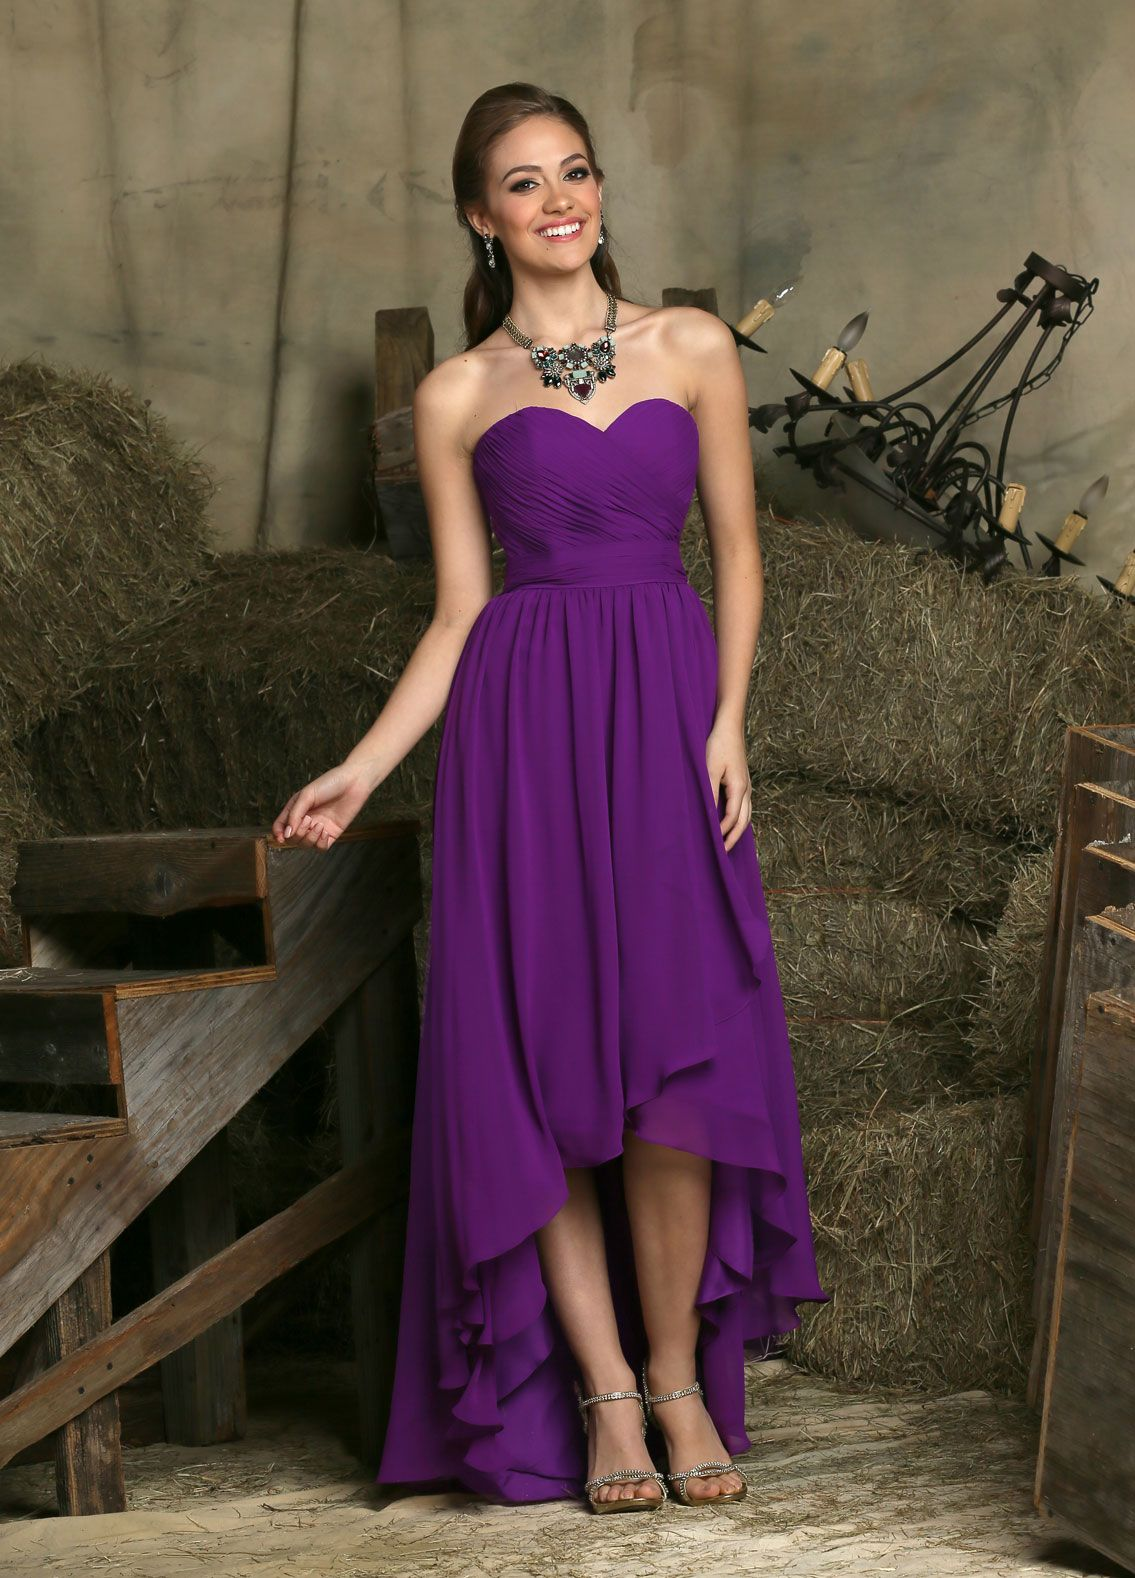 Choose fall 2015 davinci bridesmaid style 60224 when you need a choose fall 2015 davinci bridesmaid style 60224 when you need a dress for bridesmaids and matrons of all shapes and sizes ombrellifo Images